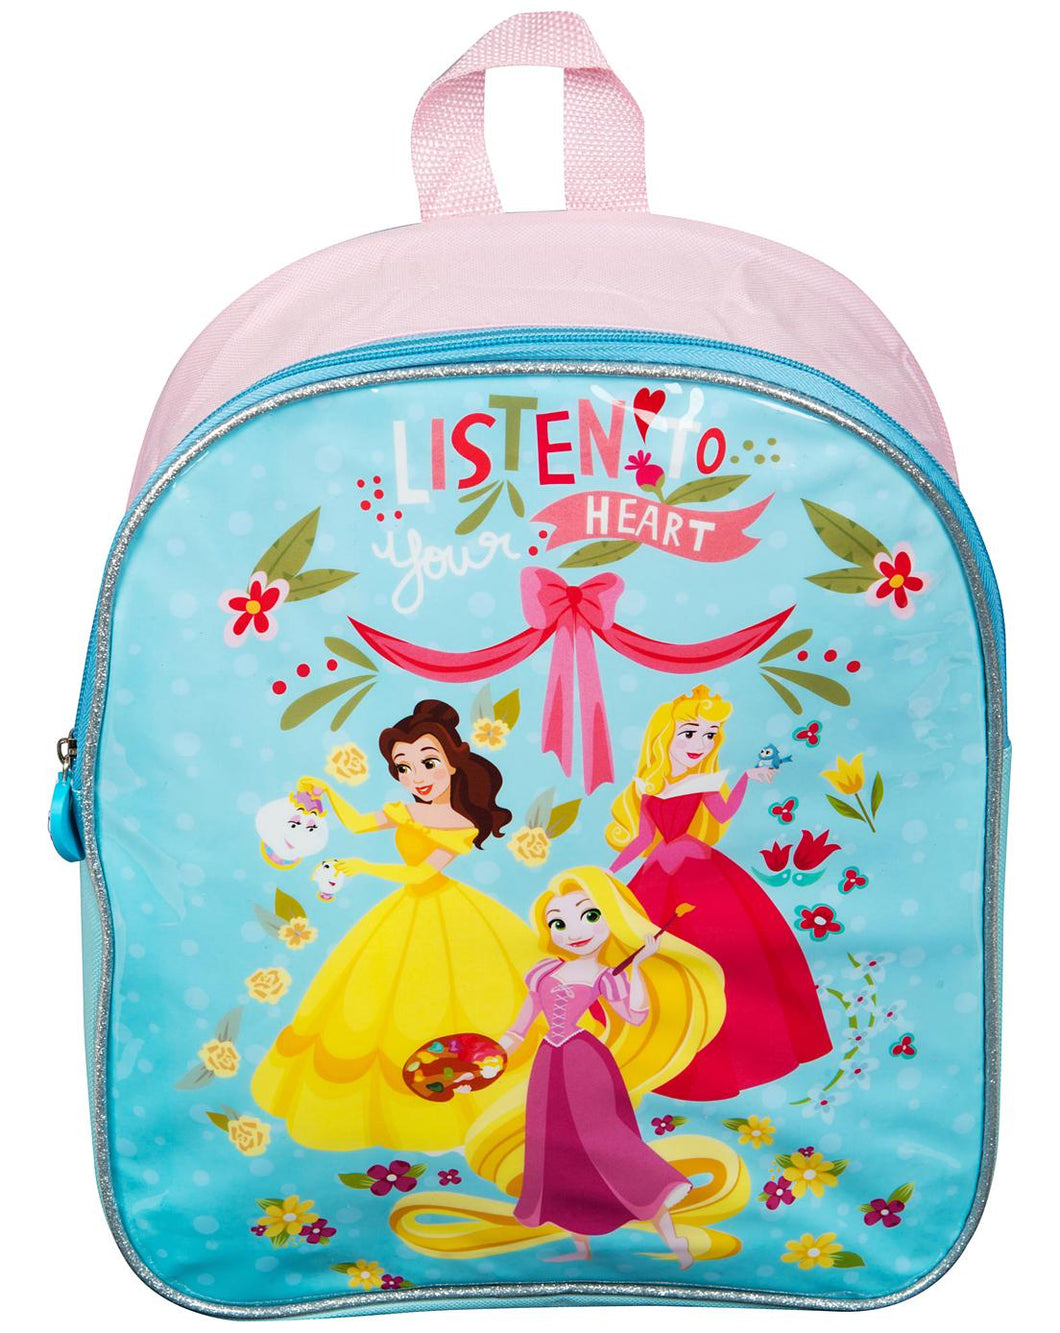 Disney's Princess Junior Backpack: Listen to Your Heart